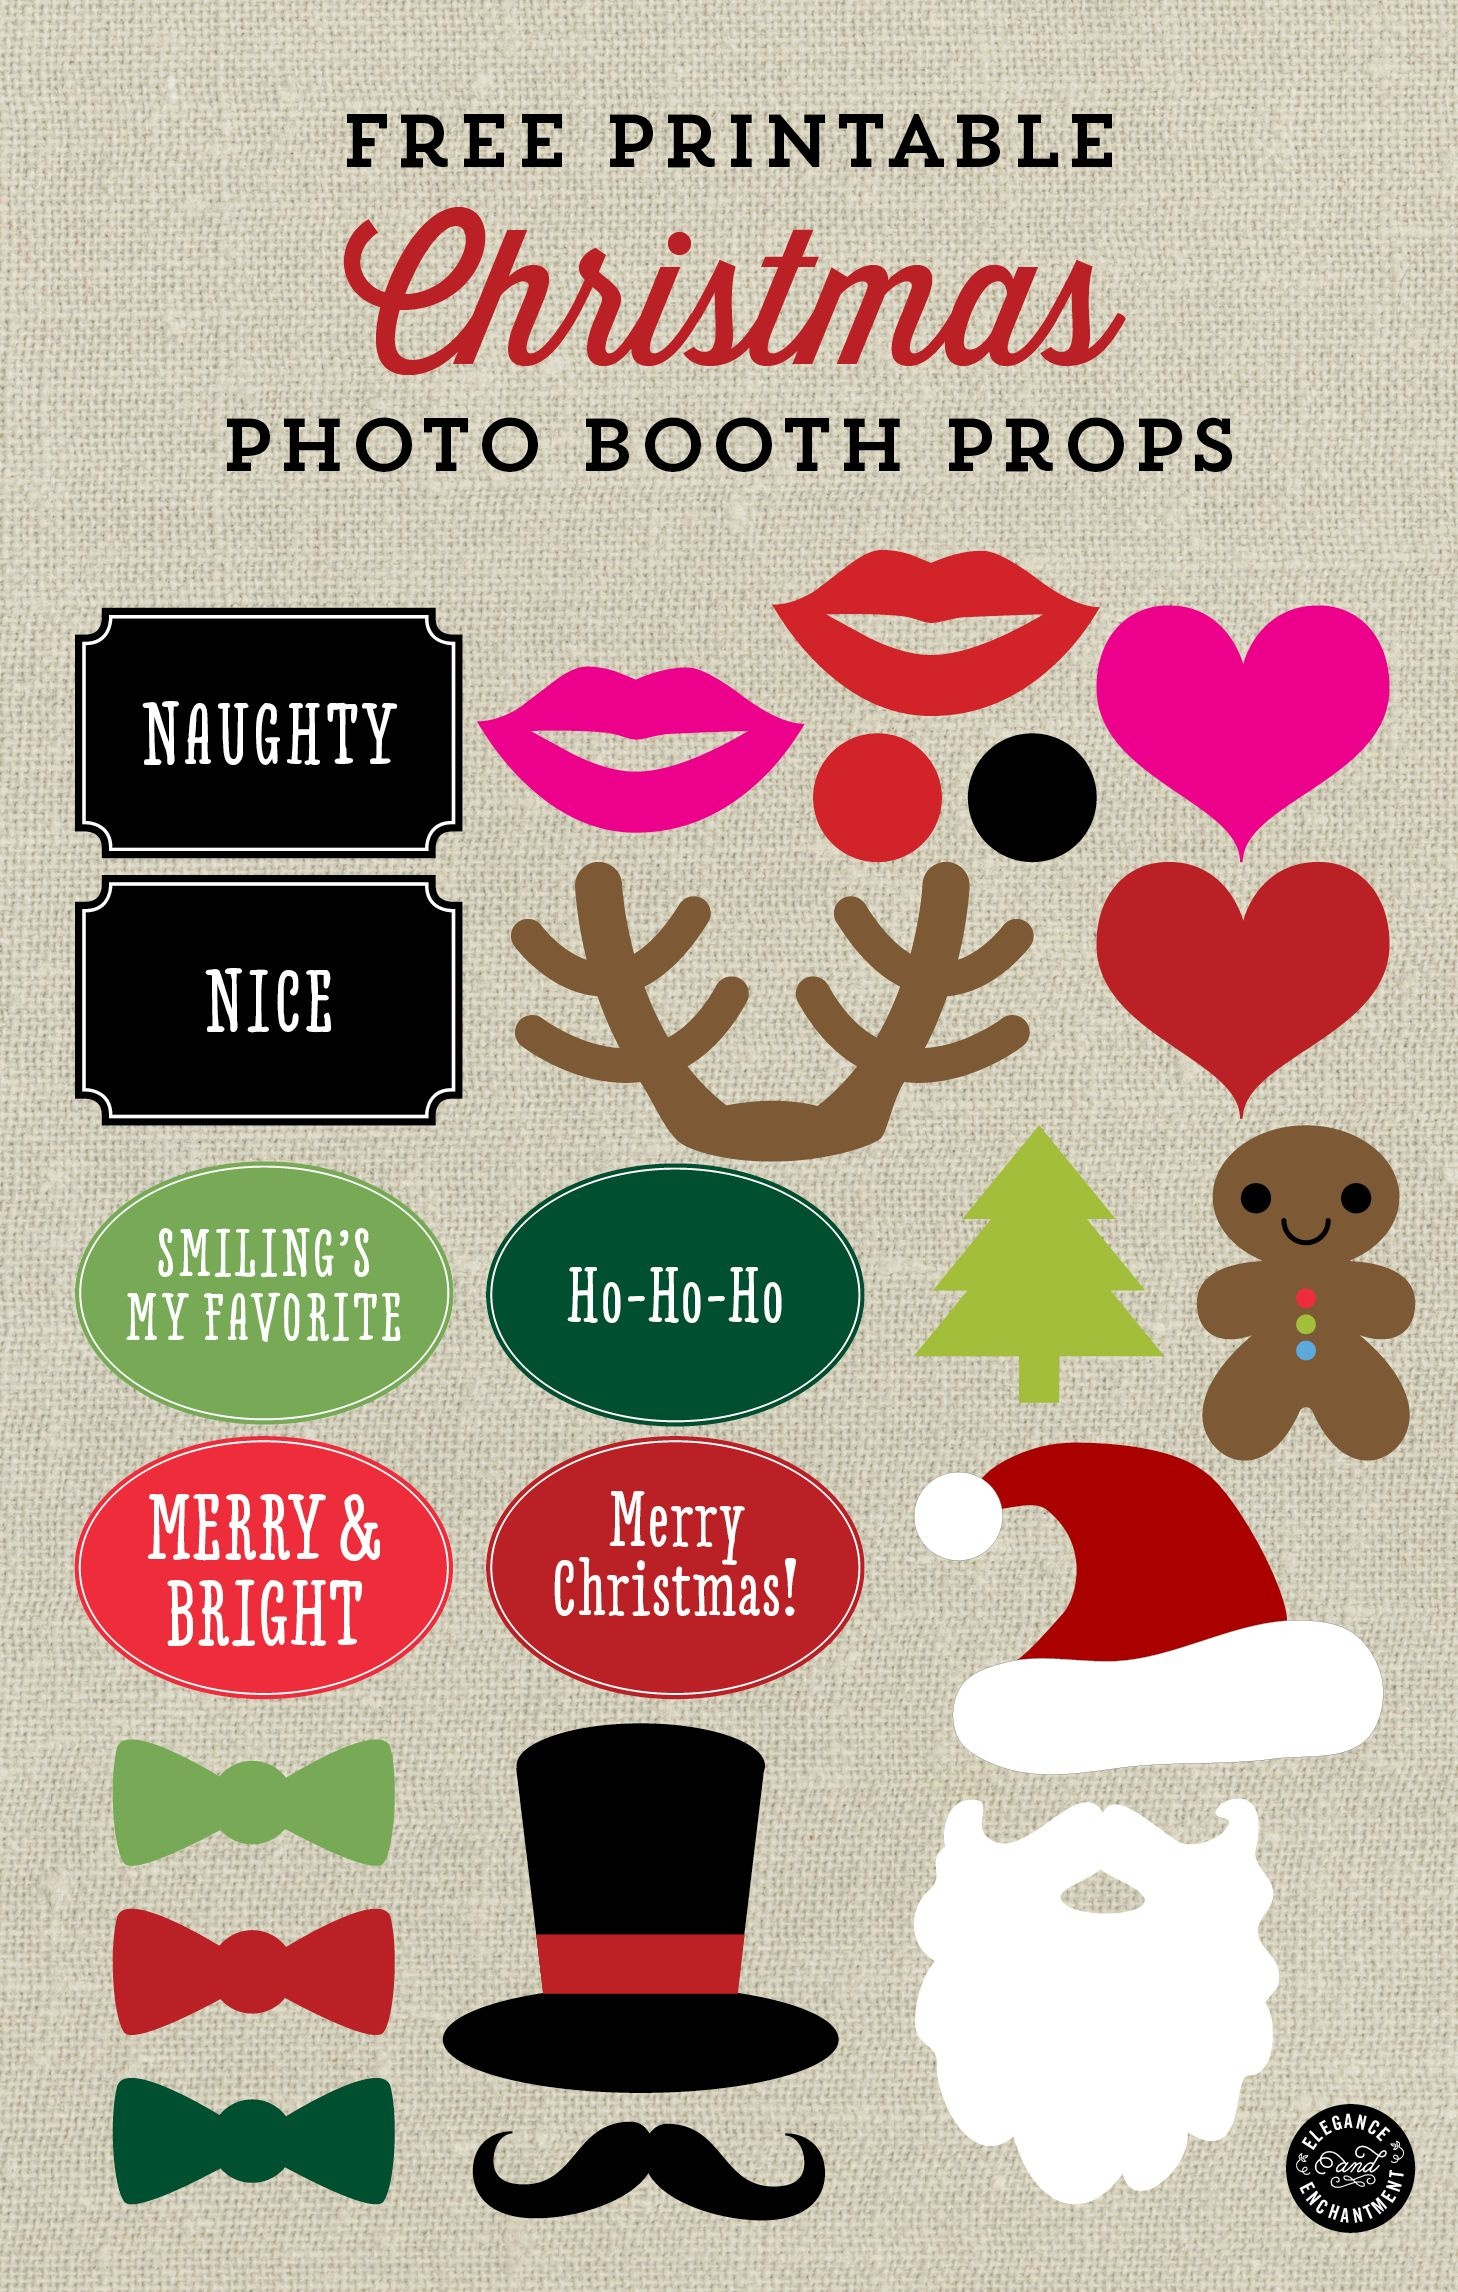 Free Printable Christmas Photo Booth Props And Signs From Elegance - Free Printable Christmas Party Signs